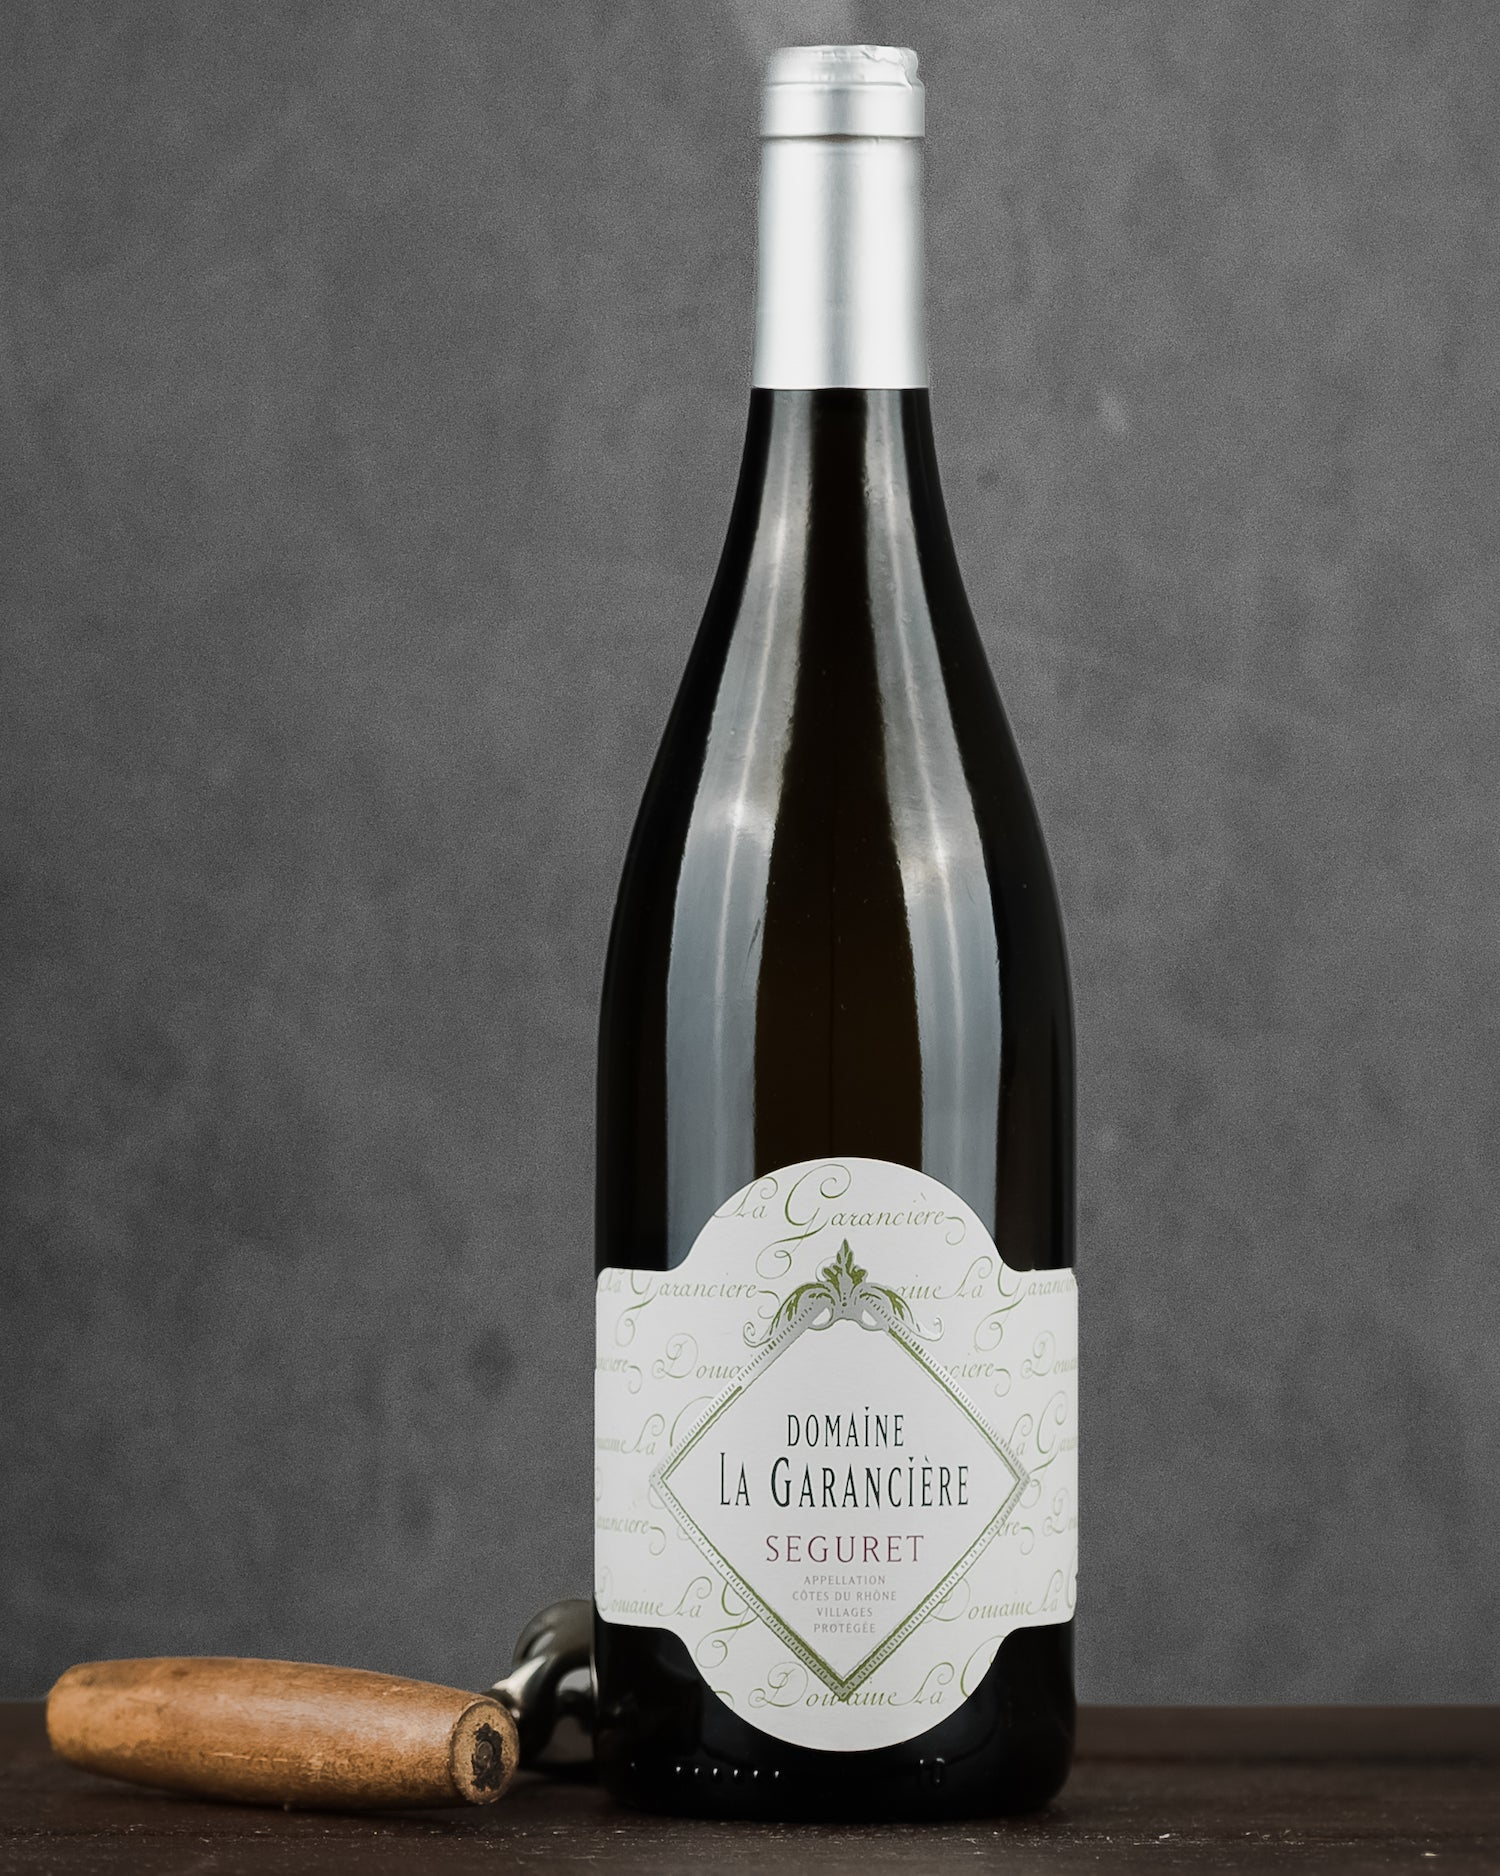 Domaine de la Garanciere Seguret Blanc 2016 - Cellar Direct